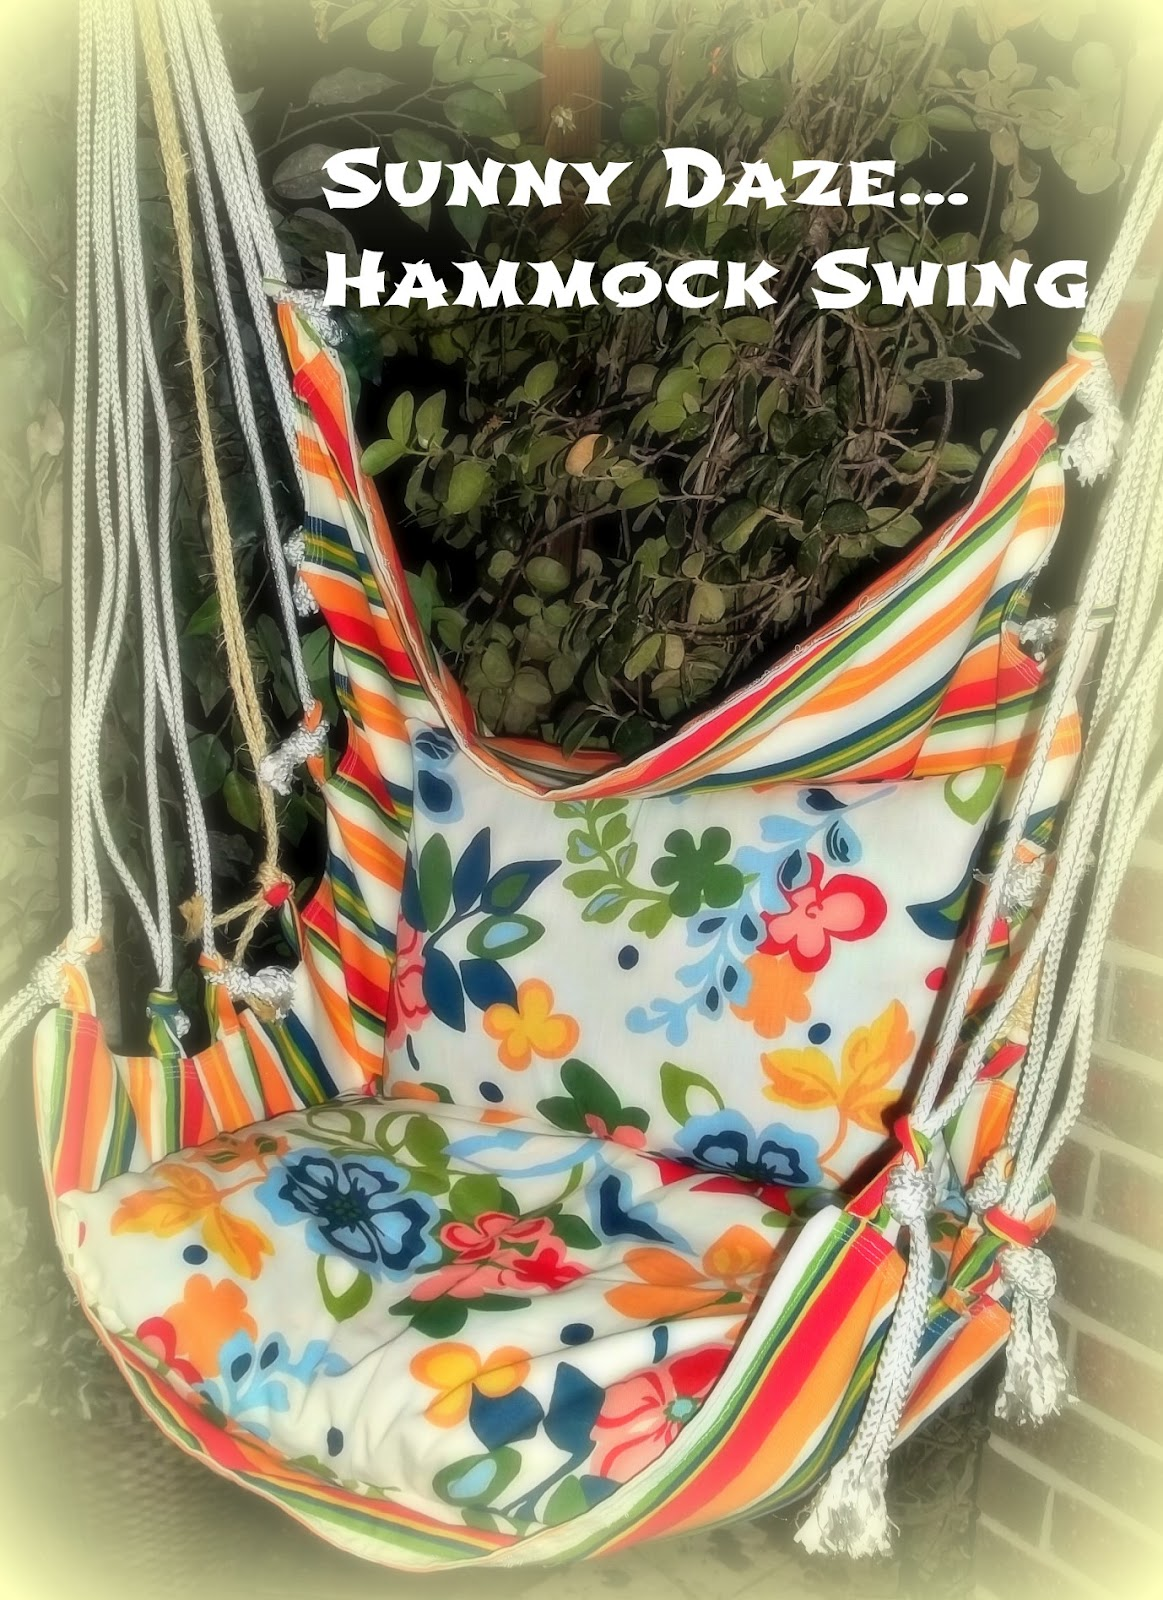 How To Make A Hammock Chair Hammock Swing Tutorial Tauni 43 Co